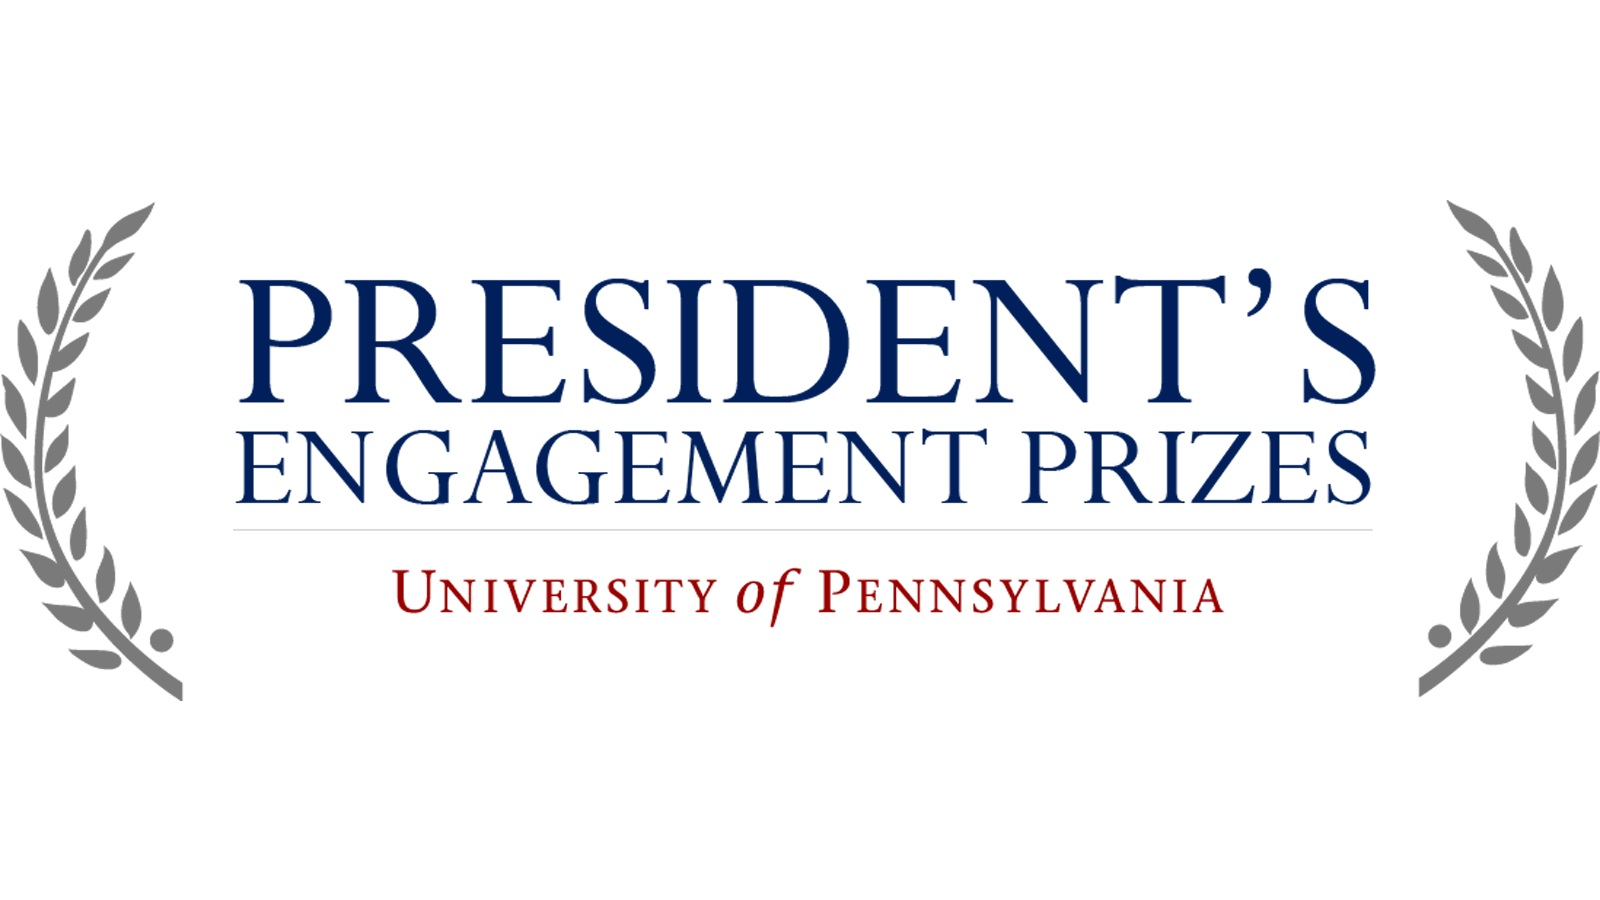 President's Engagement Prize Winner : University of Pennsylvania – 2015   Shadrack was 1 of 5 students in his graduating class awarded the $150,000 President's Engagement Prize. The prize was seed funding for the establishment of Tarkwa Breman Community Alliance, now Cocoa360.